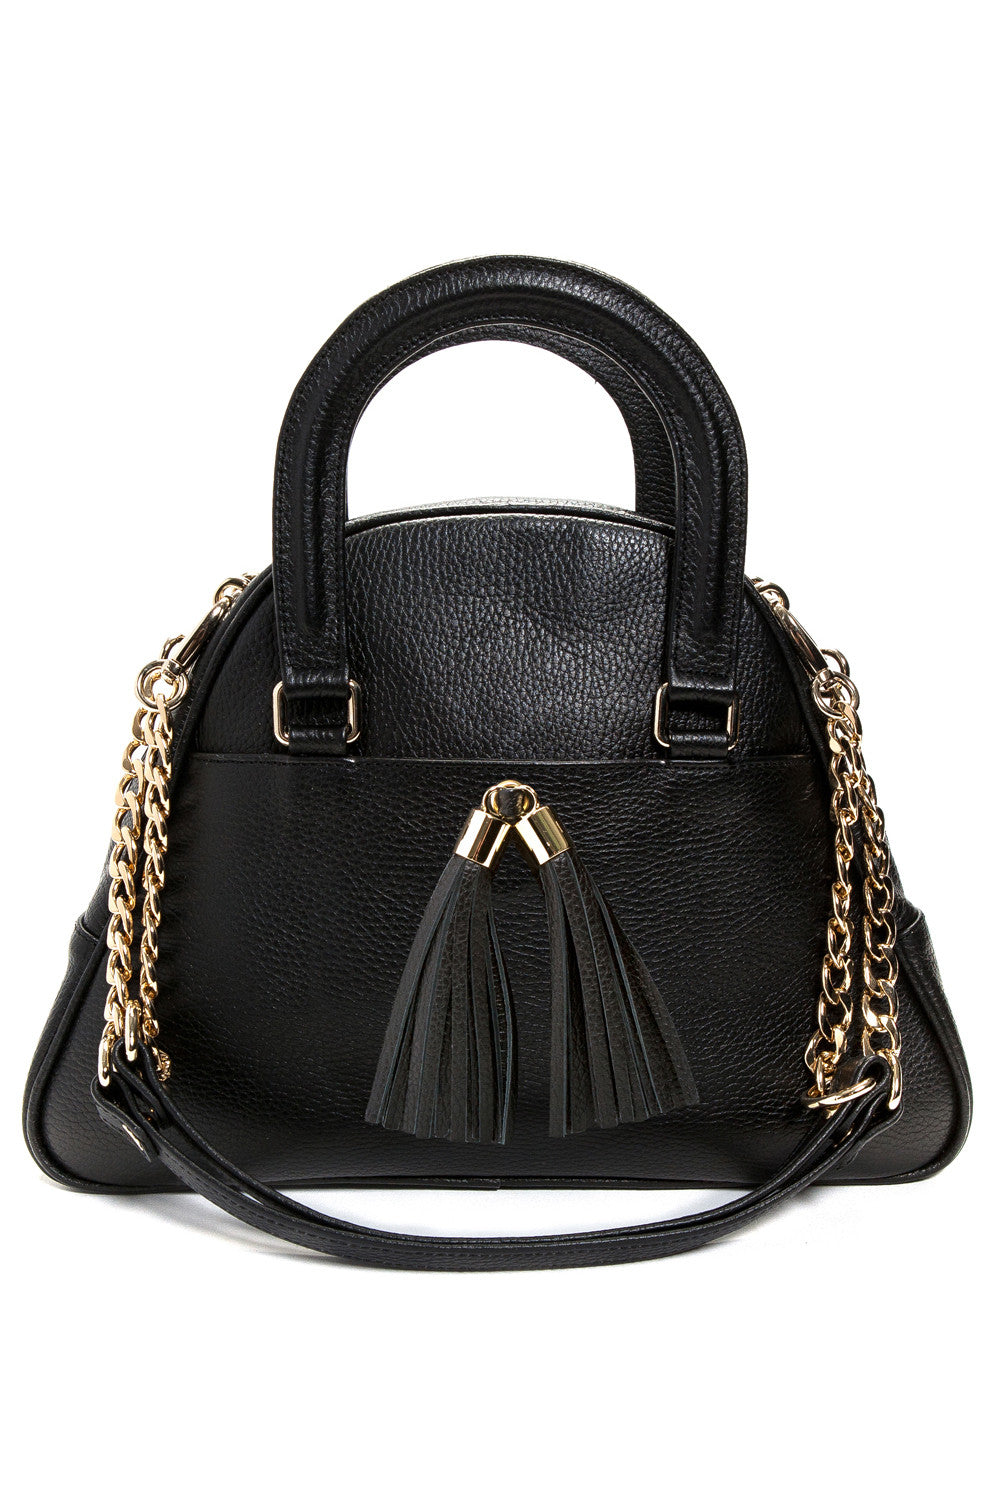 Black 'Marissa' Small Tote Handbag | Mel Boteri | Front View With Detachable Straps